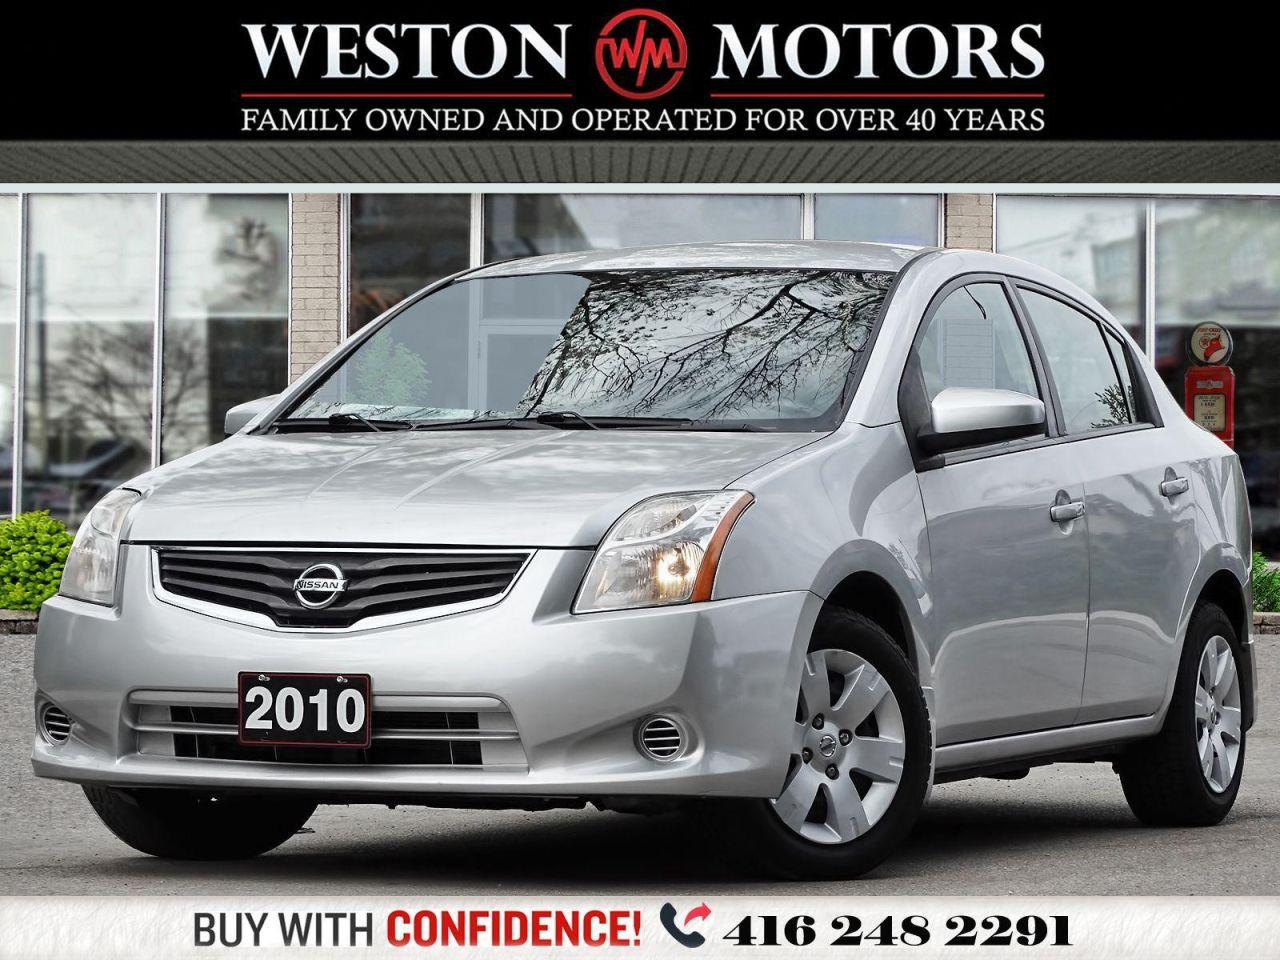 2010 Nissan Sentra 2.0L*XTRONIC CVT*LOCAL TRADE!!*SOLD CERTIFIED!!*